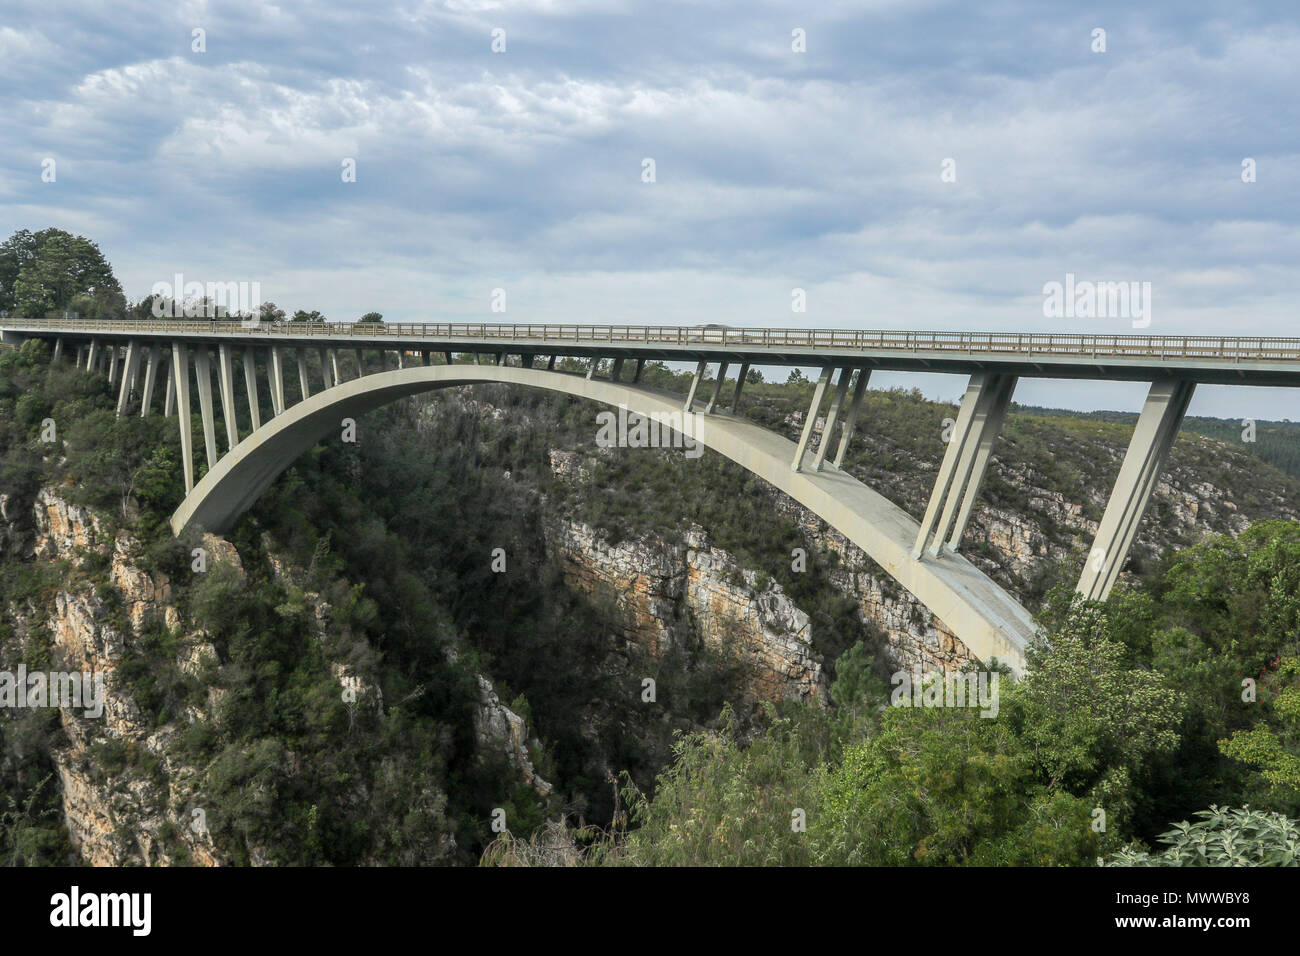 South African fynbos under the Paul Sauer Bridge, Nature's Valley, Western Cape, in the Tsitsikamma protected area on the Garden Route, South Africa - Stock Image